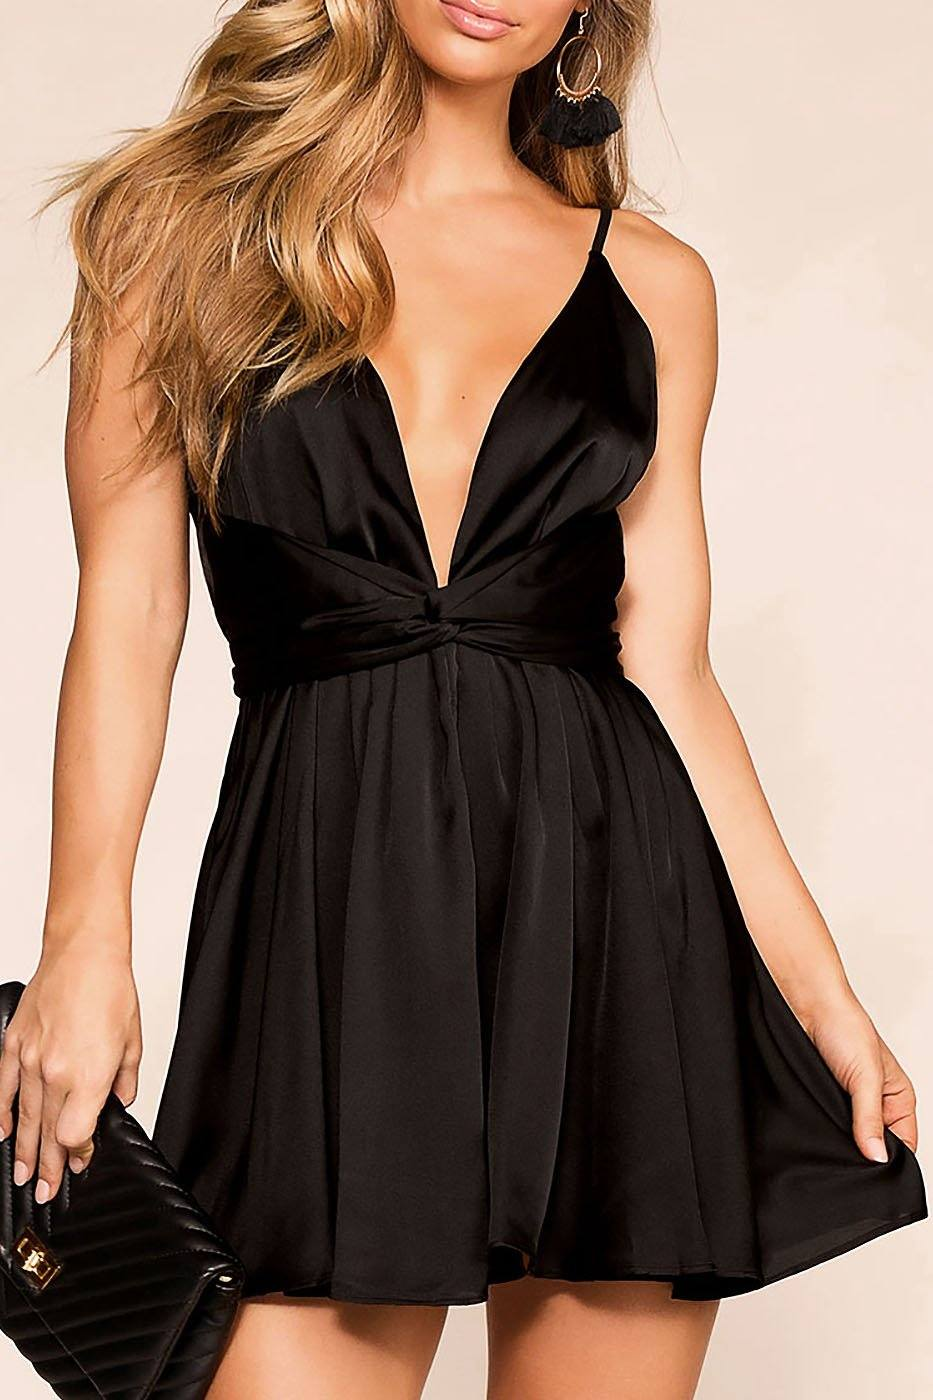 Take The Plunge Black Skater Dress | Luxxel